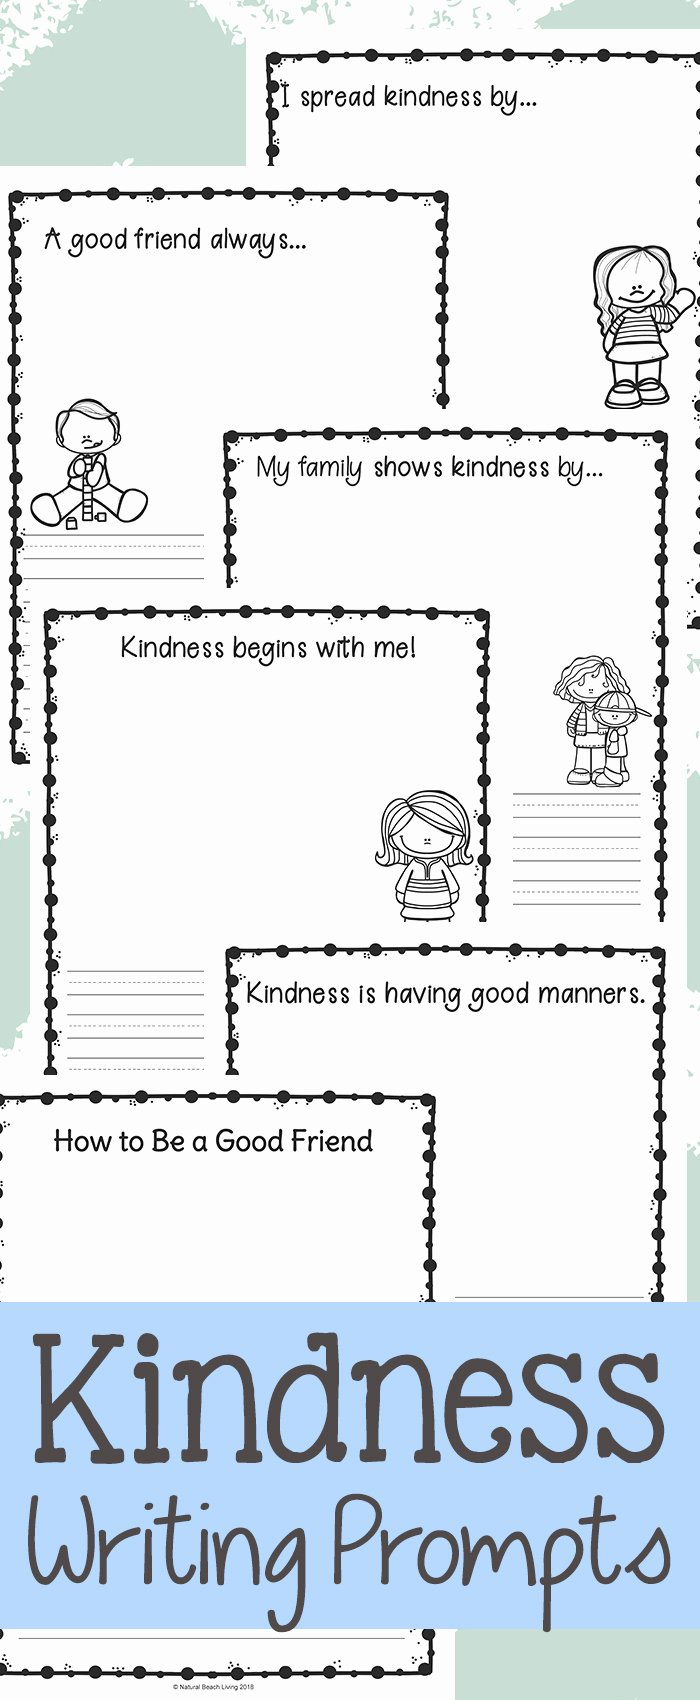 Kindness Worksheets for Preschoolers top Worksheet Kindness Writing Prompts Exercises fornder